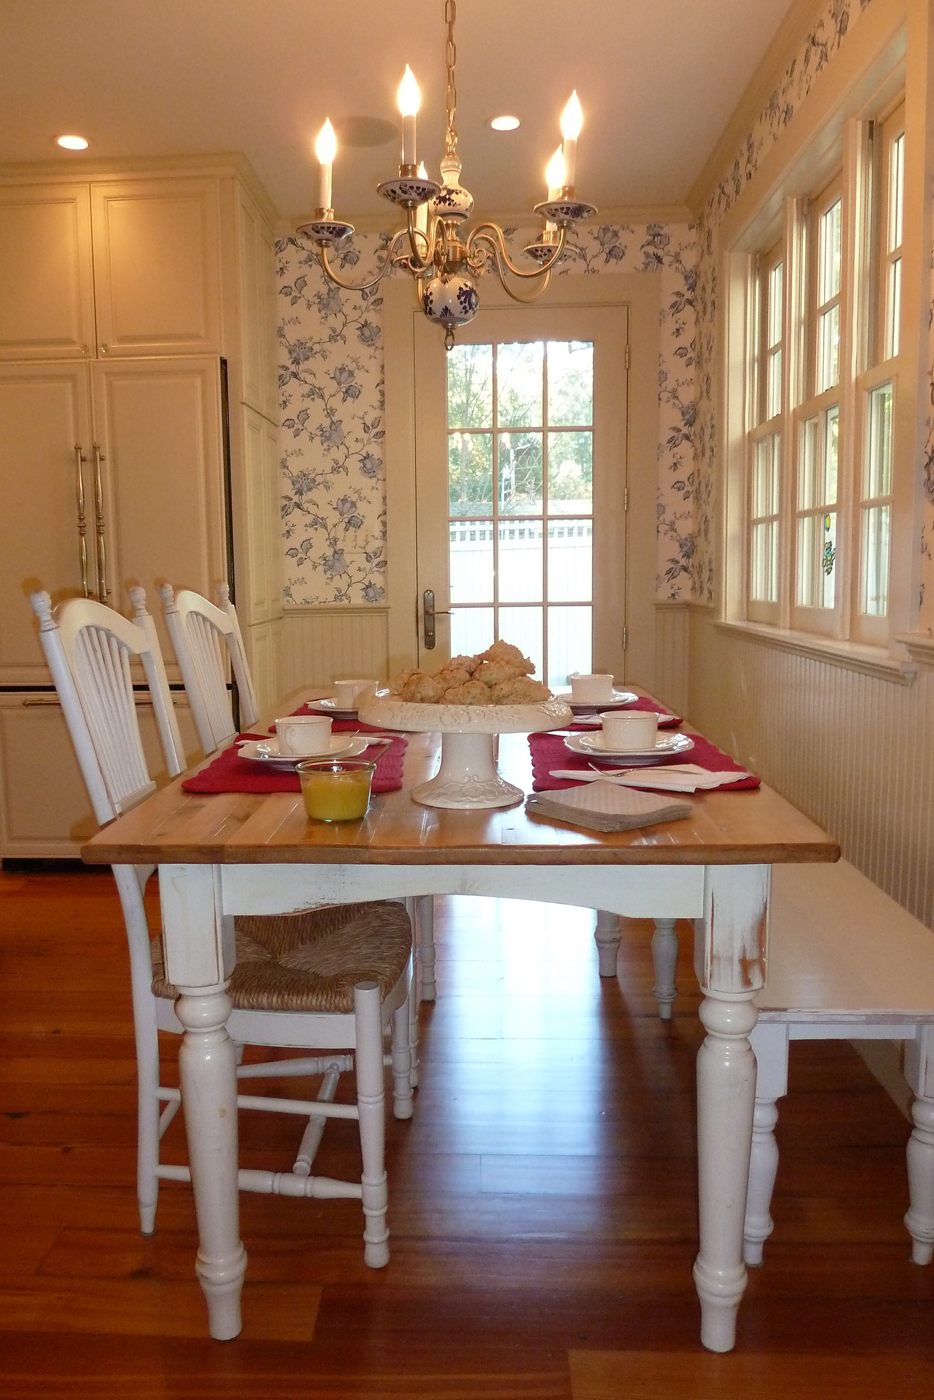 The Third Kitchen We Visited On The Wenham Museum Heart Of The Home Kitchen  Tour Showcased The Design Talent Of Lisa Kawski Of Lmk Interiors.